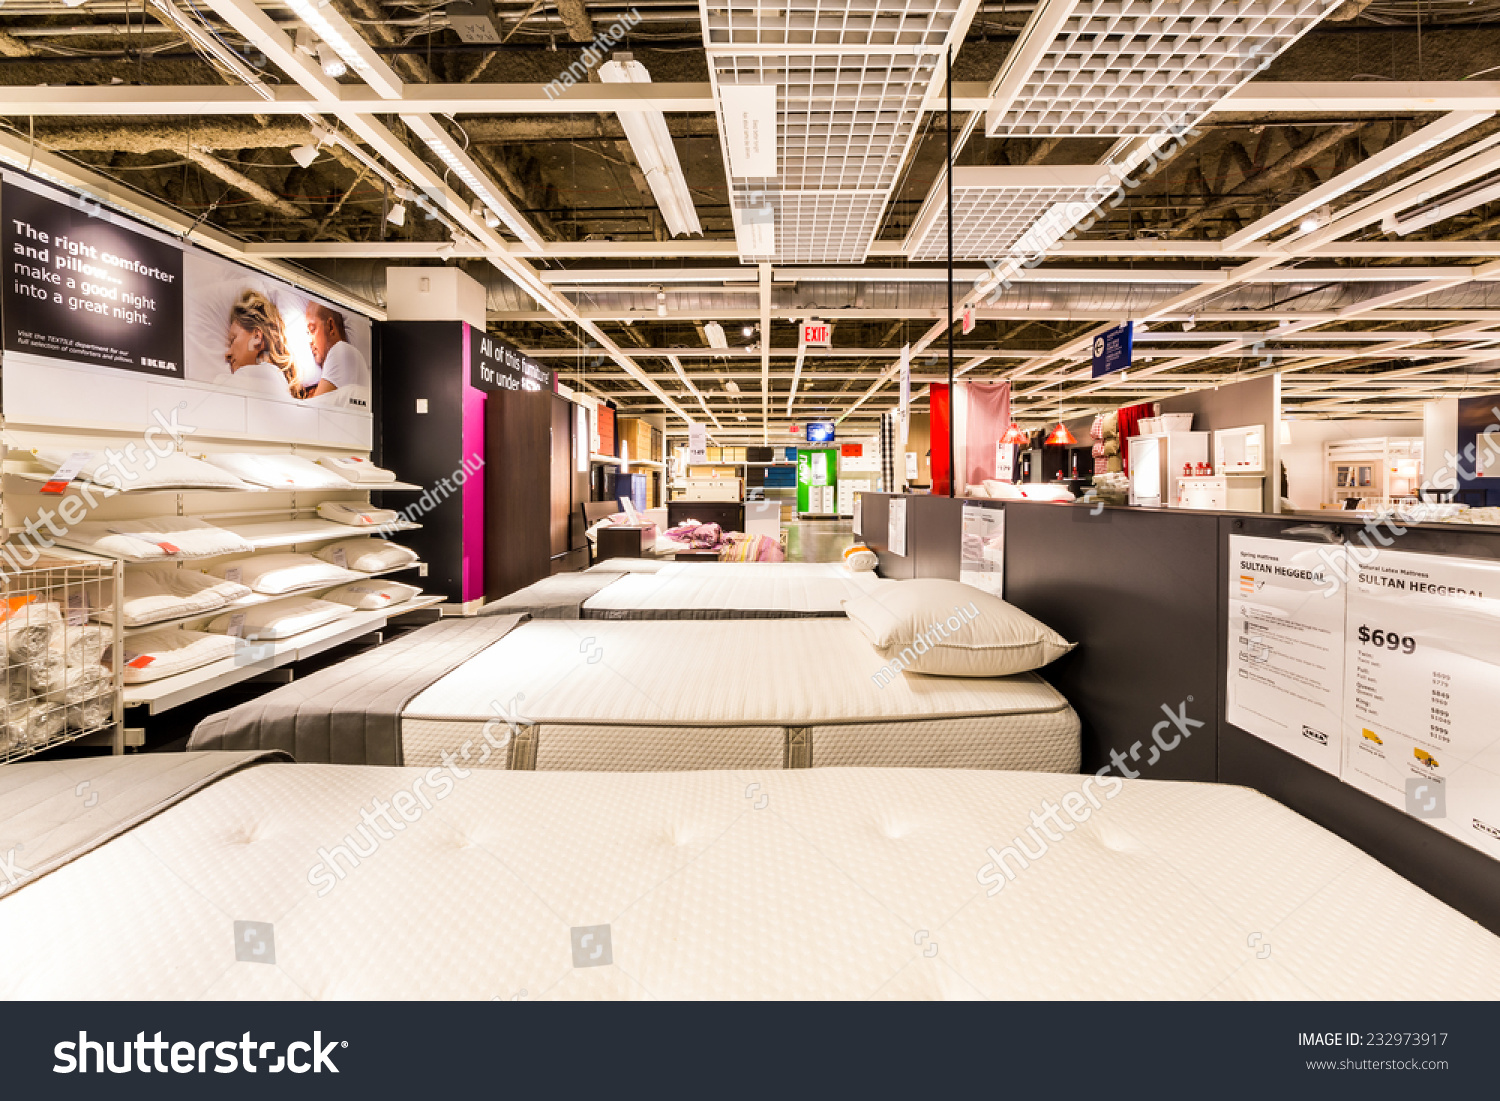 Ikea Elizabeth Hours Elizabeth Nj November 23 2014 Bedroom Stock Photo Edit Now